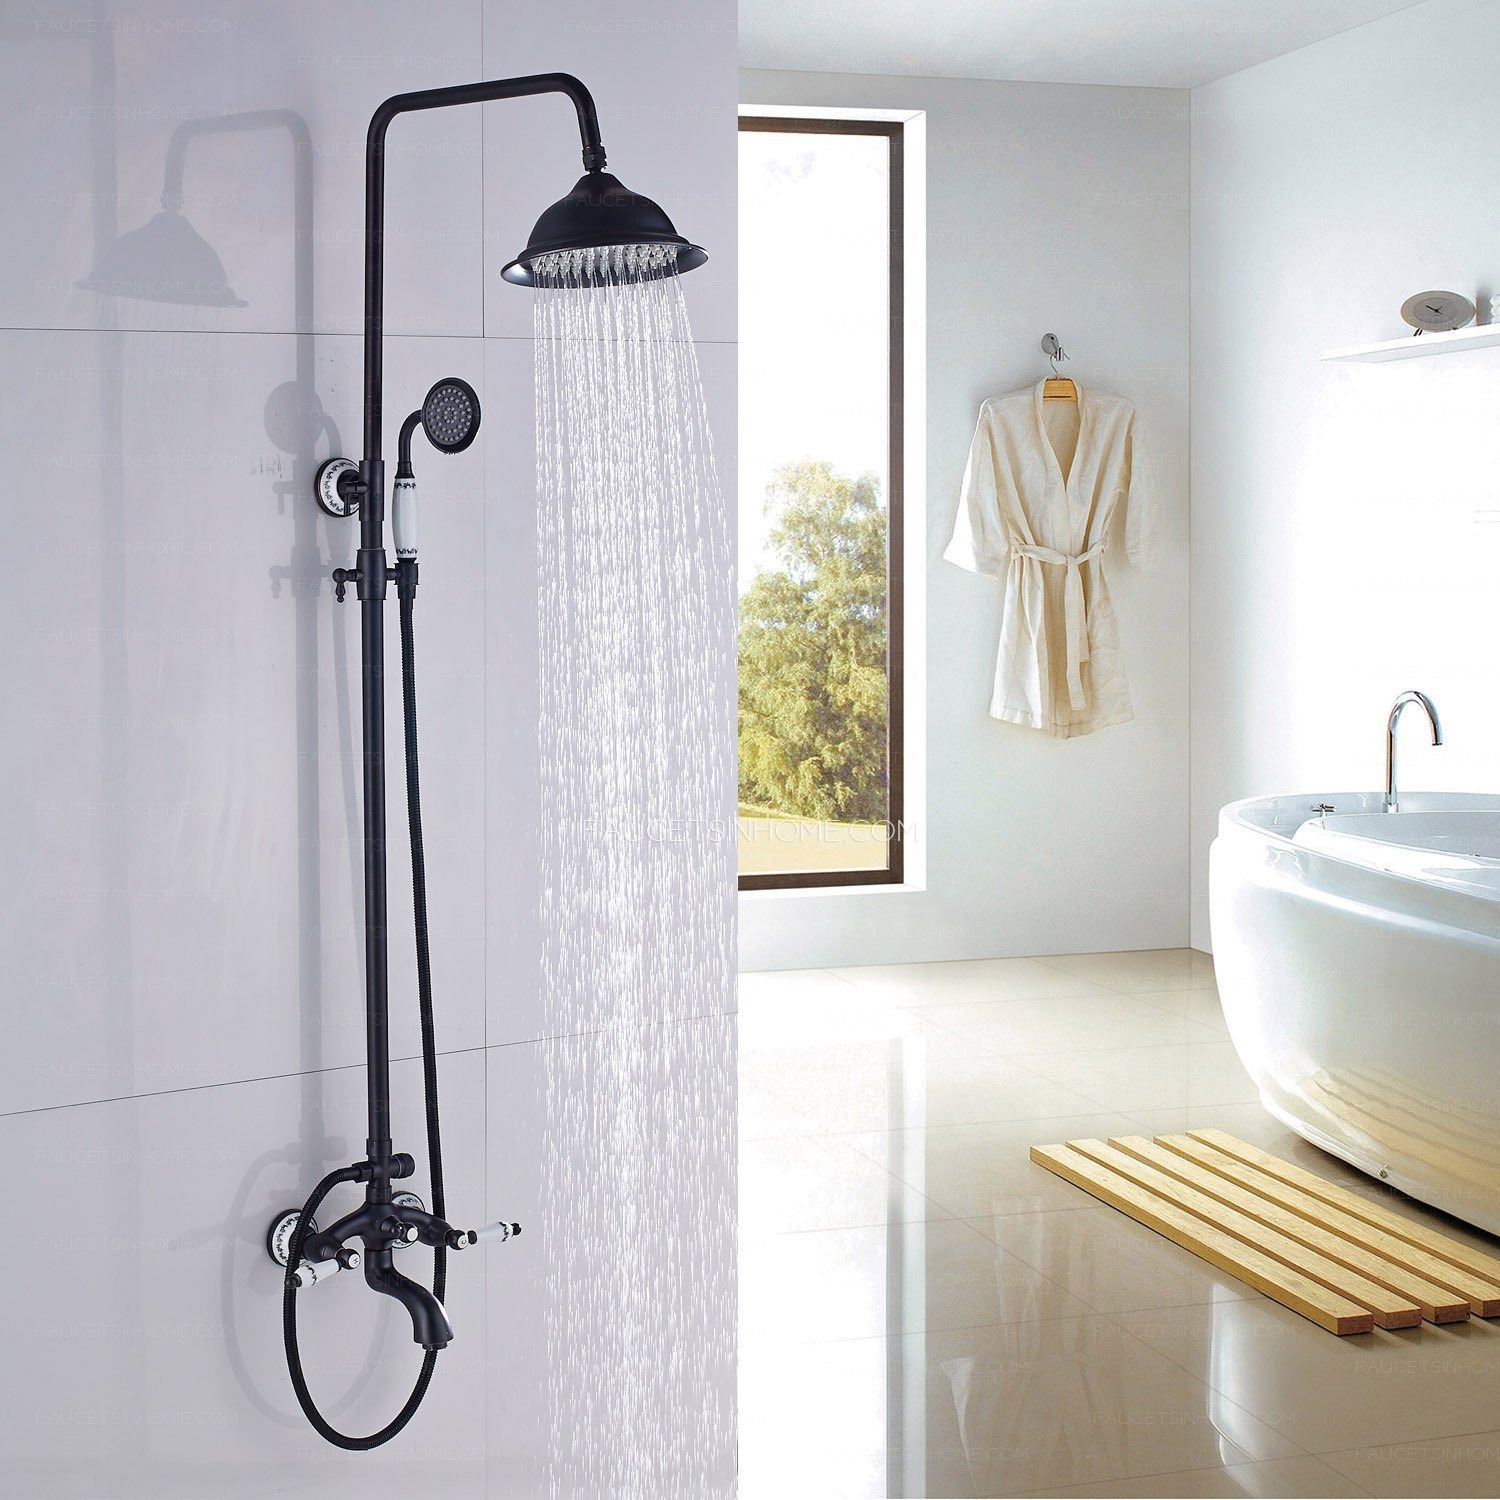 Oil Rubbed Bronze Shower Head Matte Black Bathroom Shower